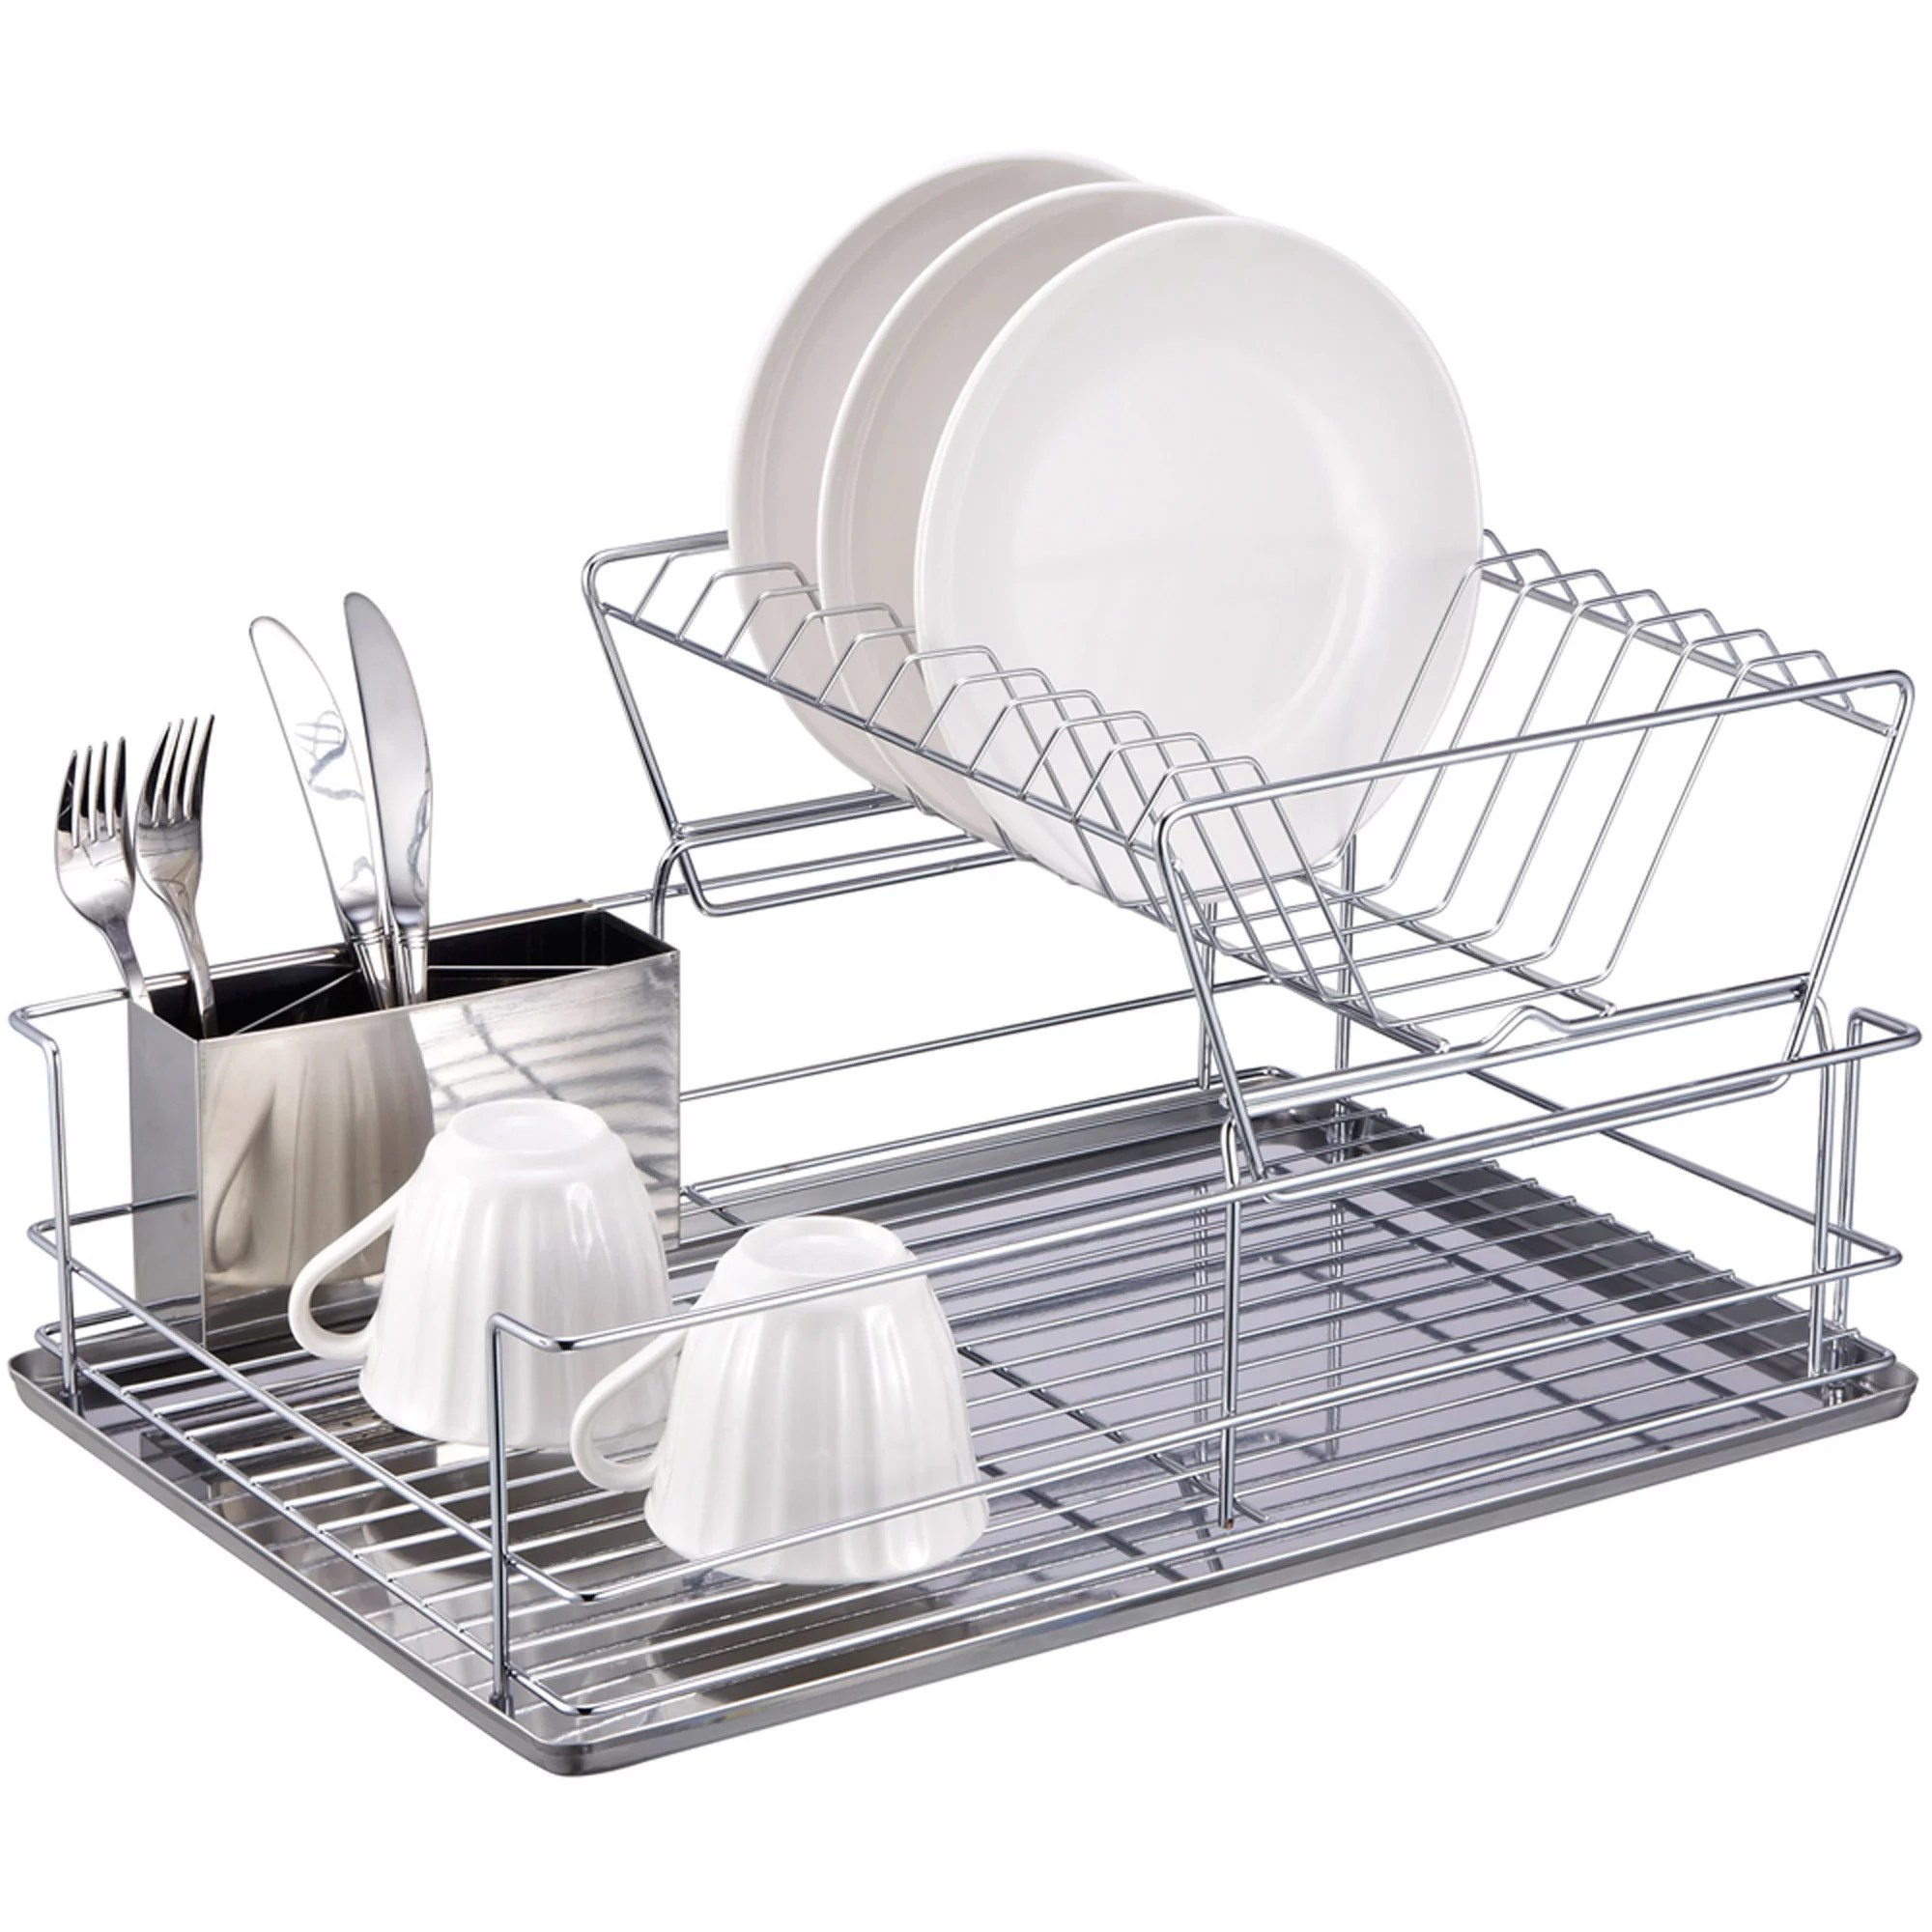 kitchen drying rack stainless steel sinks home basics 2 tier dish chrome walmart com